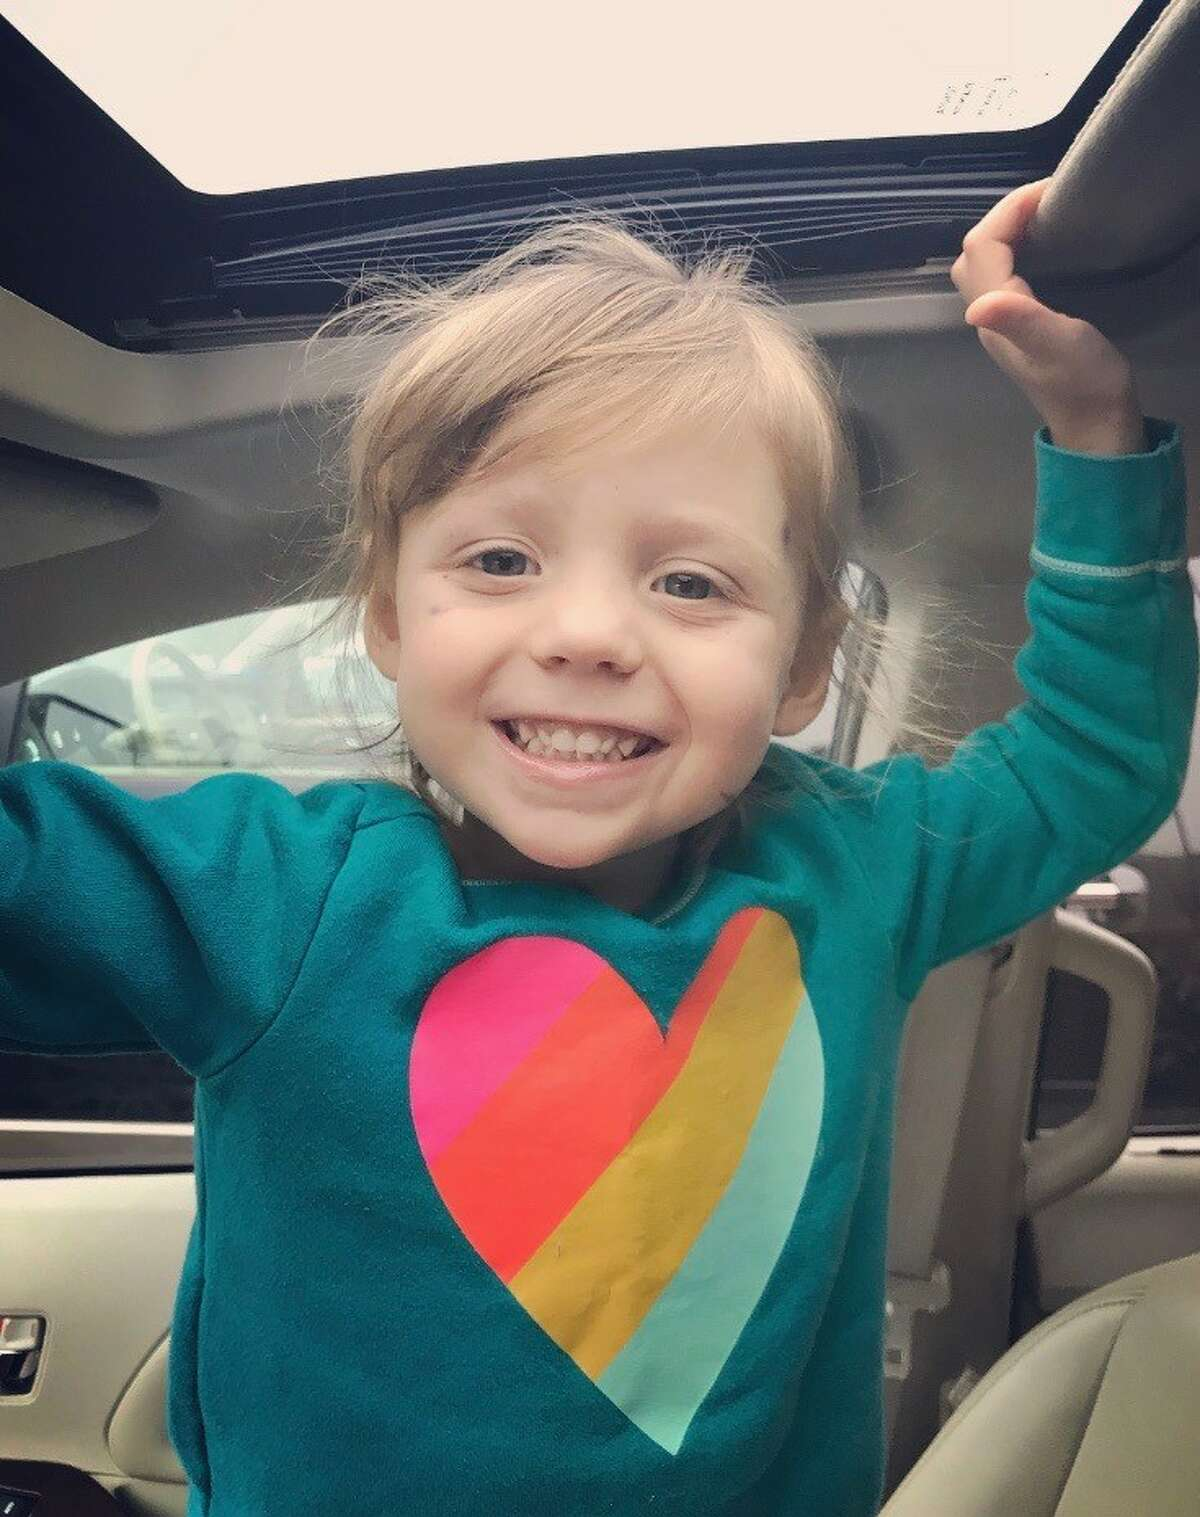 Just six weeks ago, Addyson Williams was diagnosed with severe aplastic anemia, a rare blood disorder that in layman's terms means Addyson's body can not produce enough red blood cells it needs to function properly.